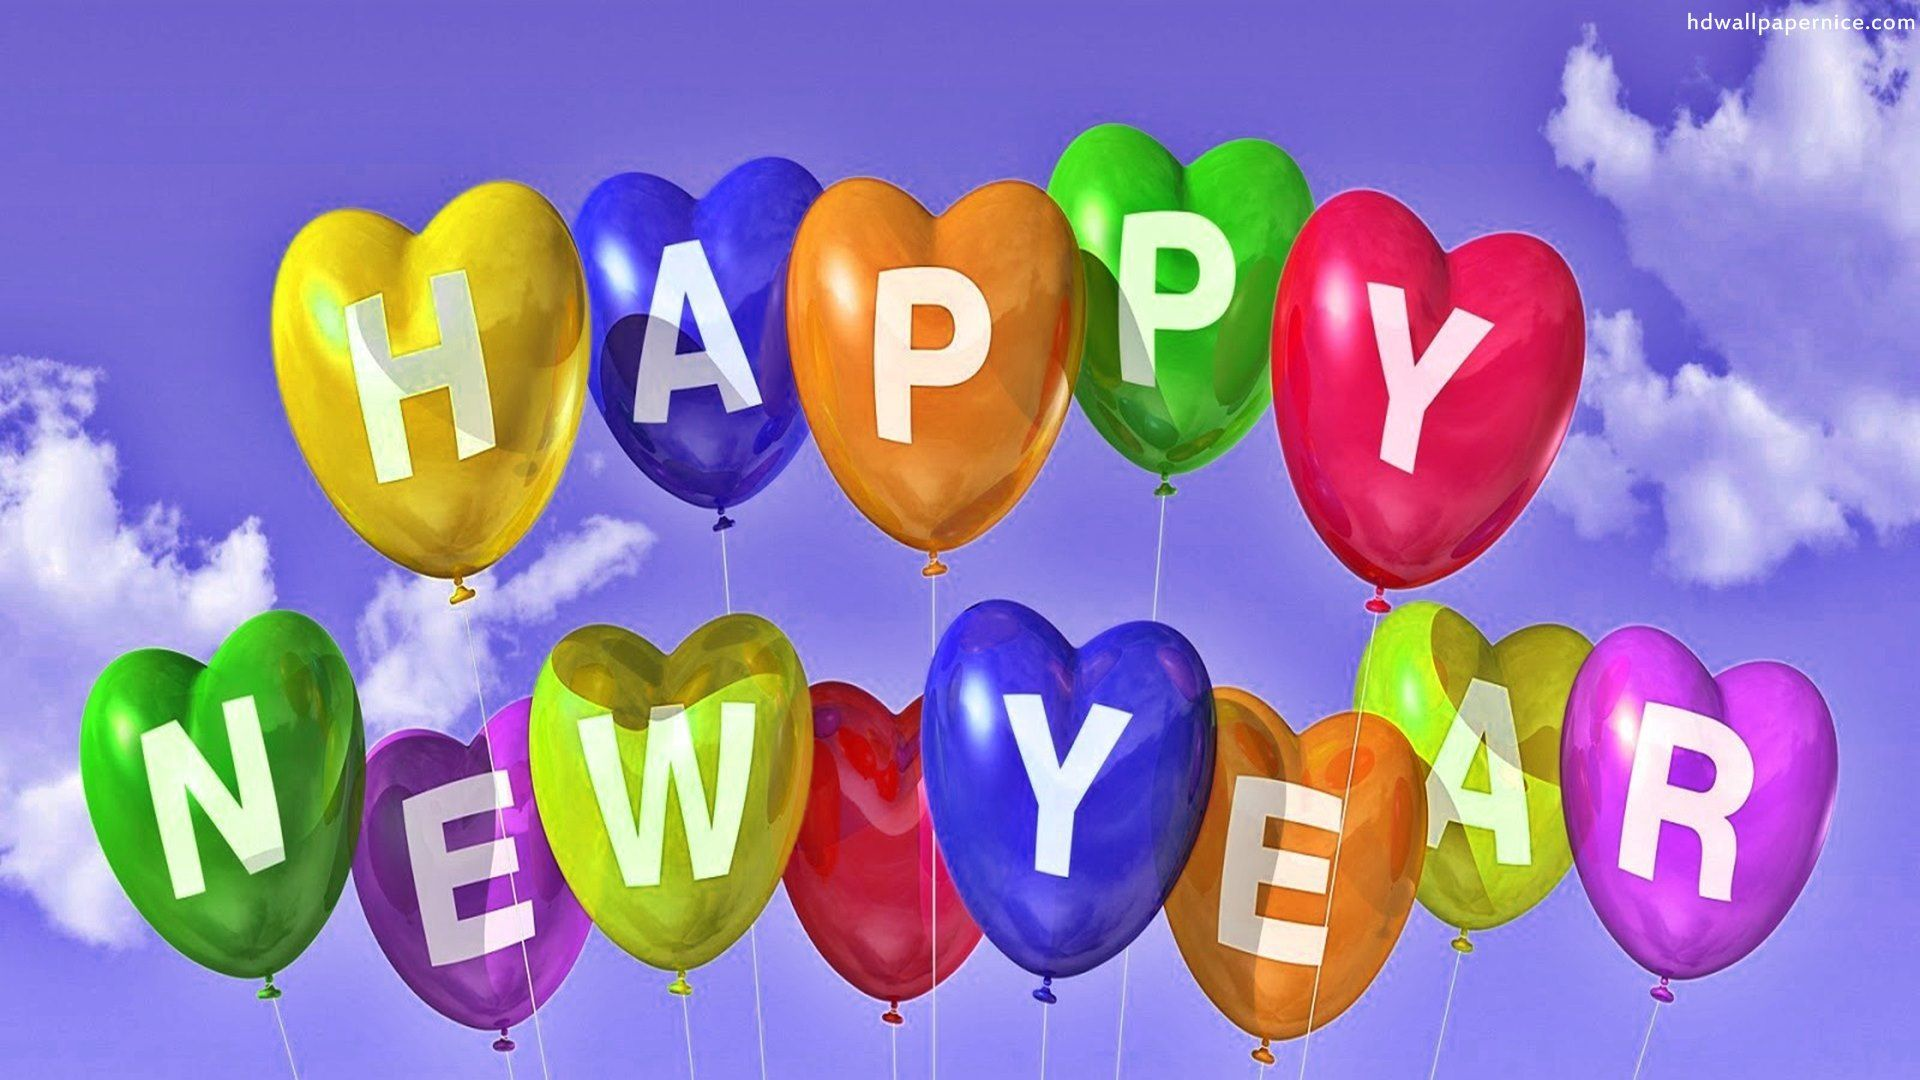 45 Beautiful Happy New Year Wallpapers Hd New Year Wishes Happy